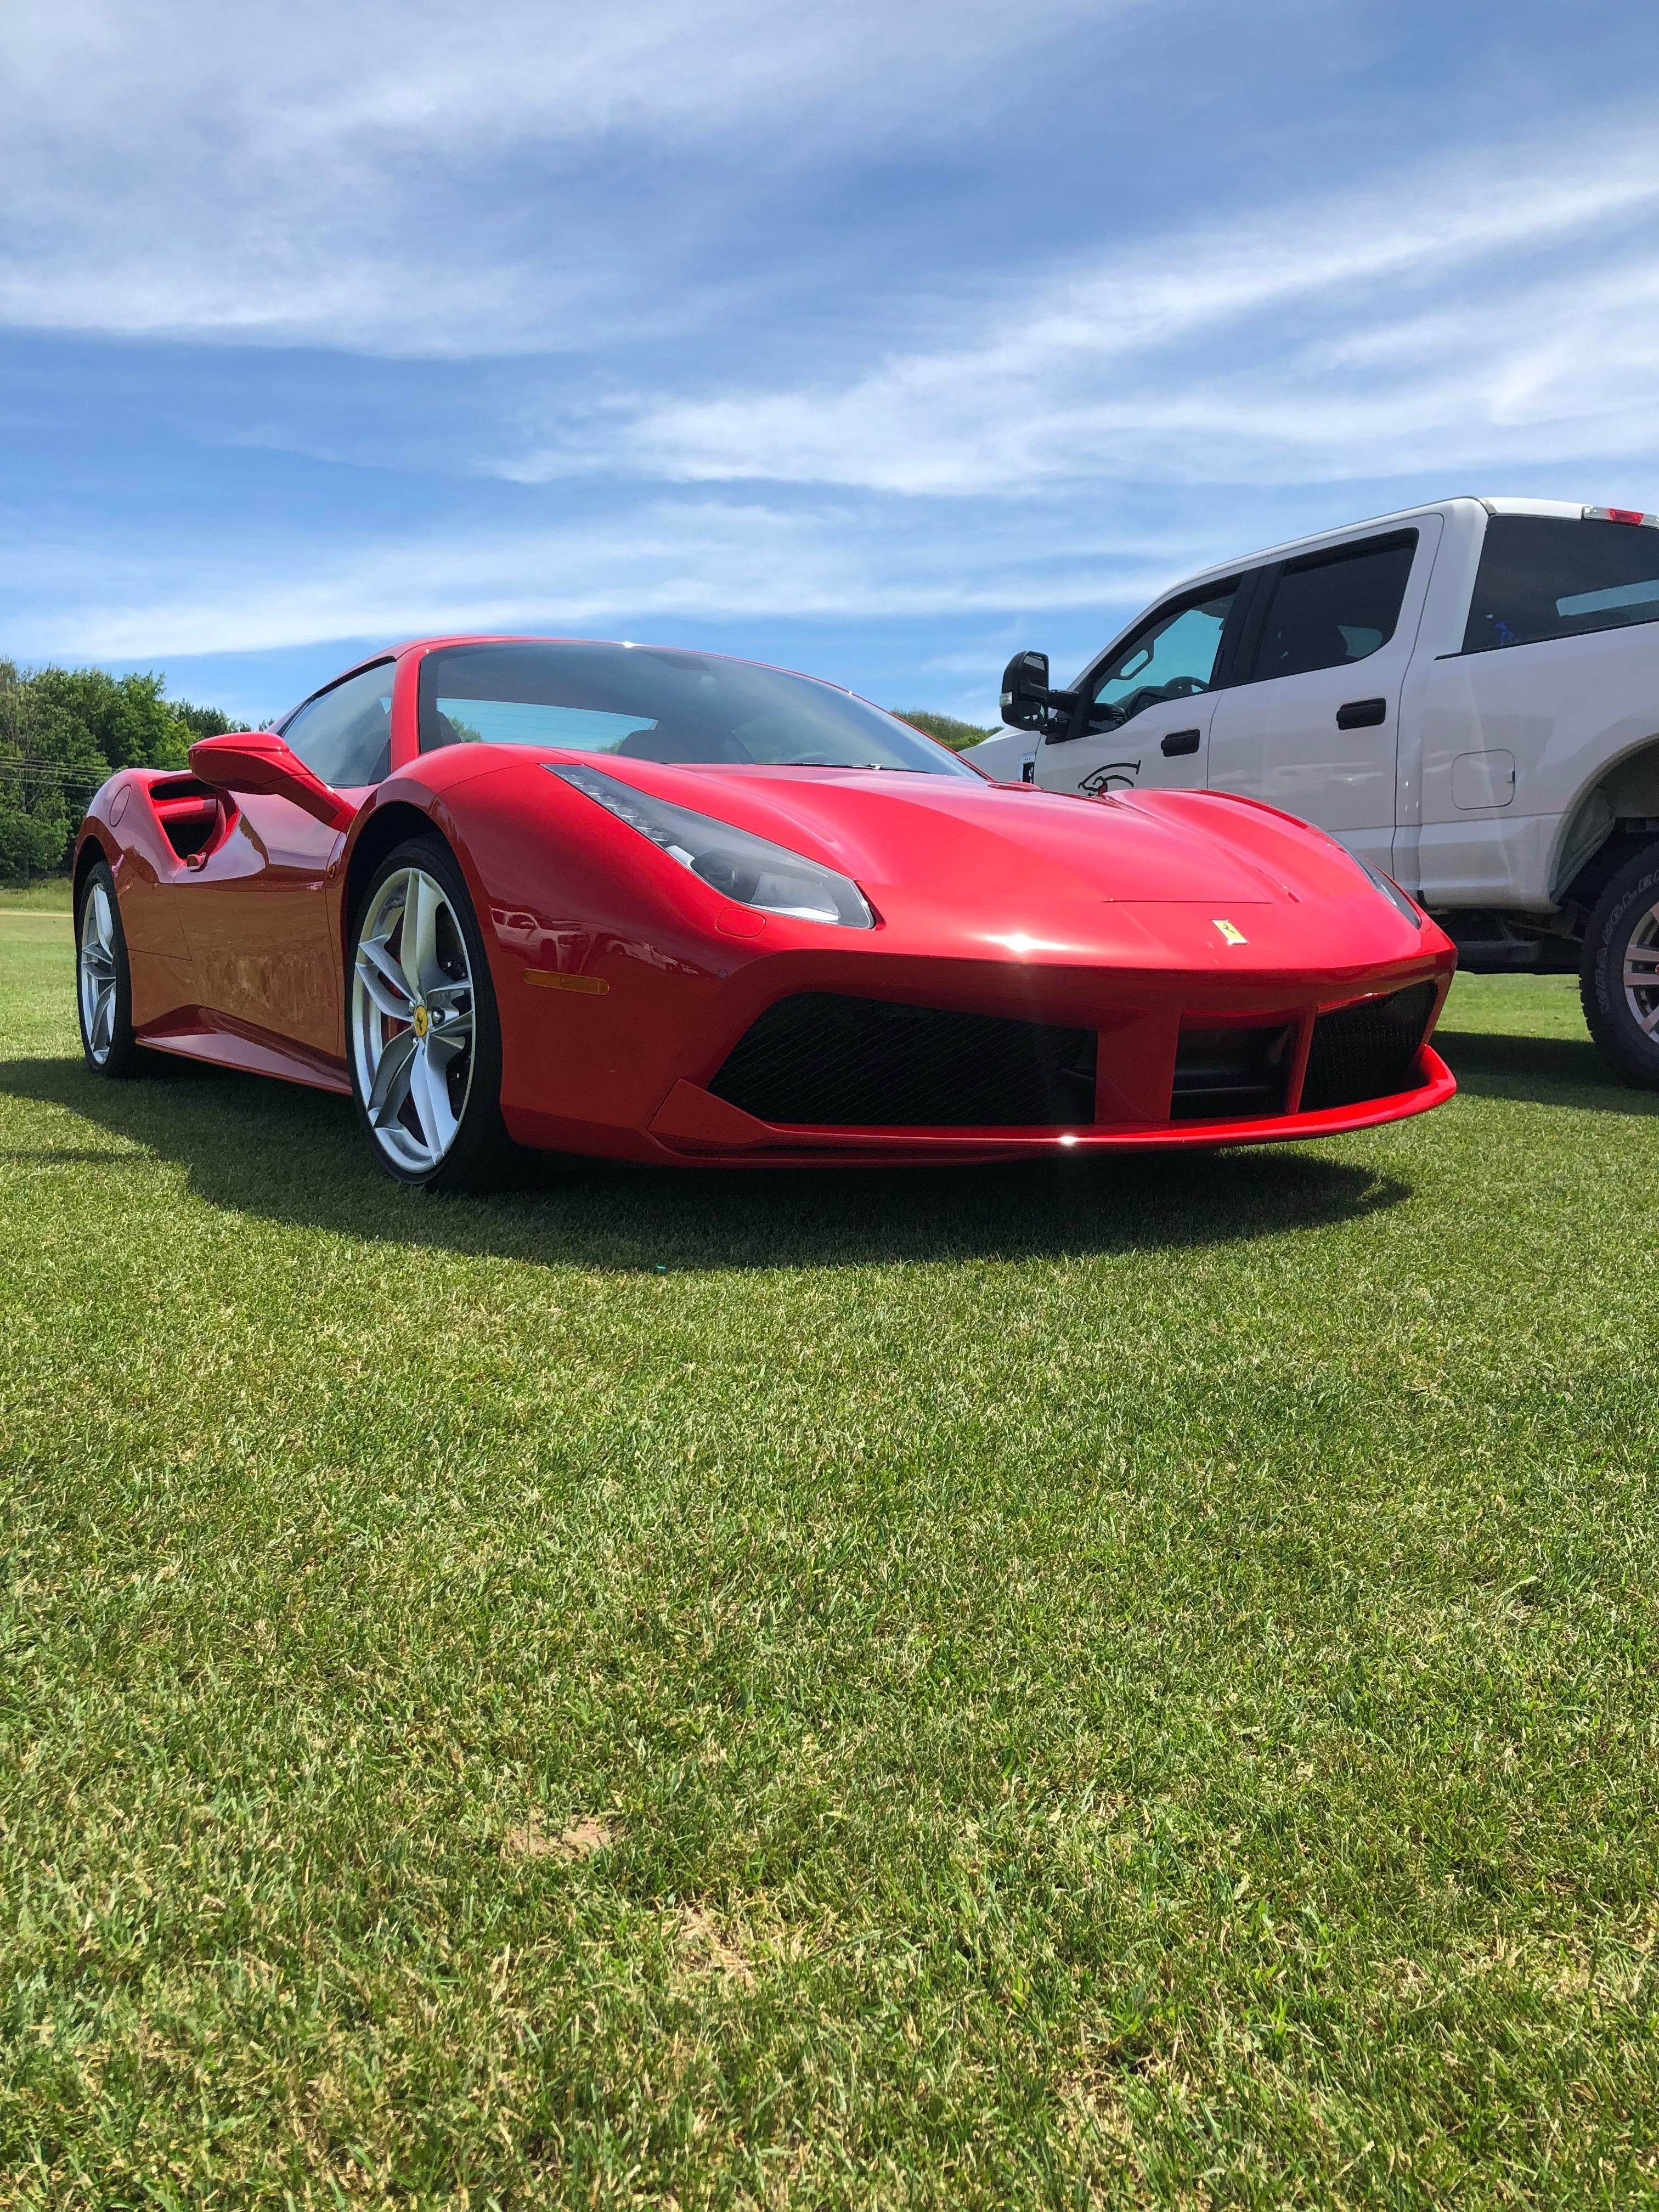 2020 Ferrari 488 Gtb Out In The Country Side In Northern Michigan With Images Ferrari 488 Ferrari